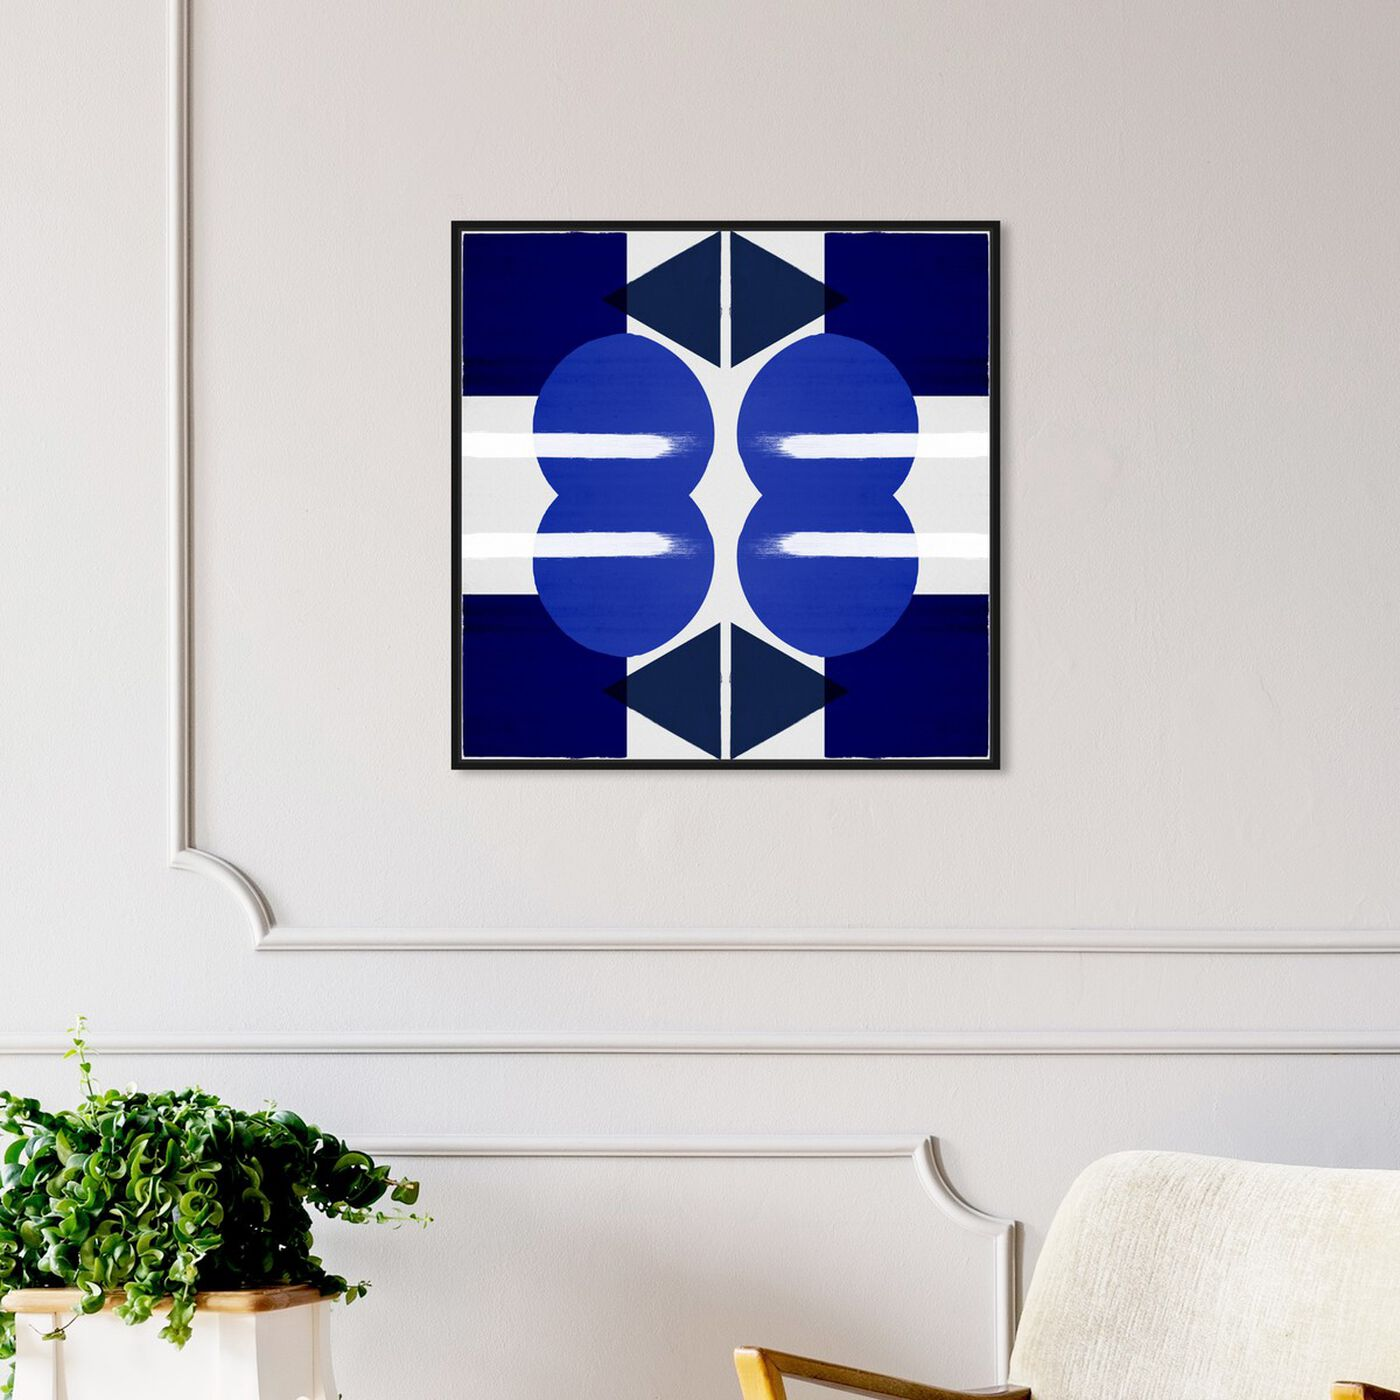 Hanging view of Geometry Studies III featuring abstract and geometric art.